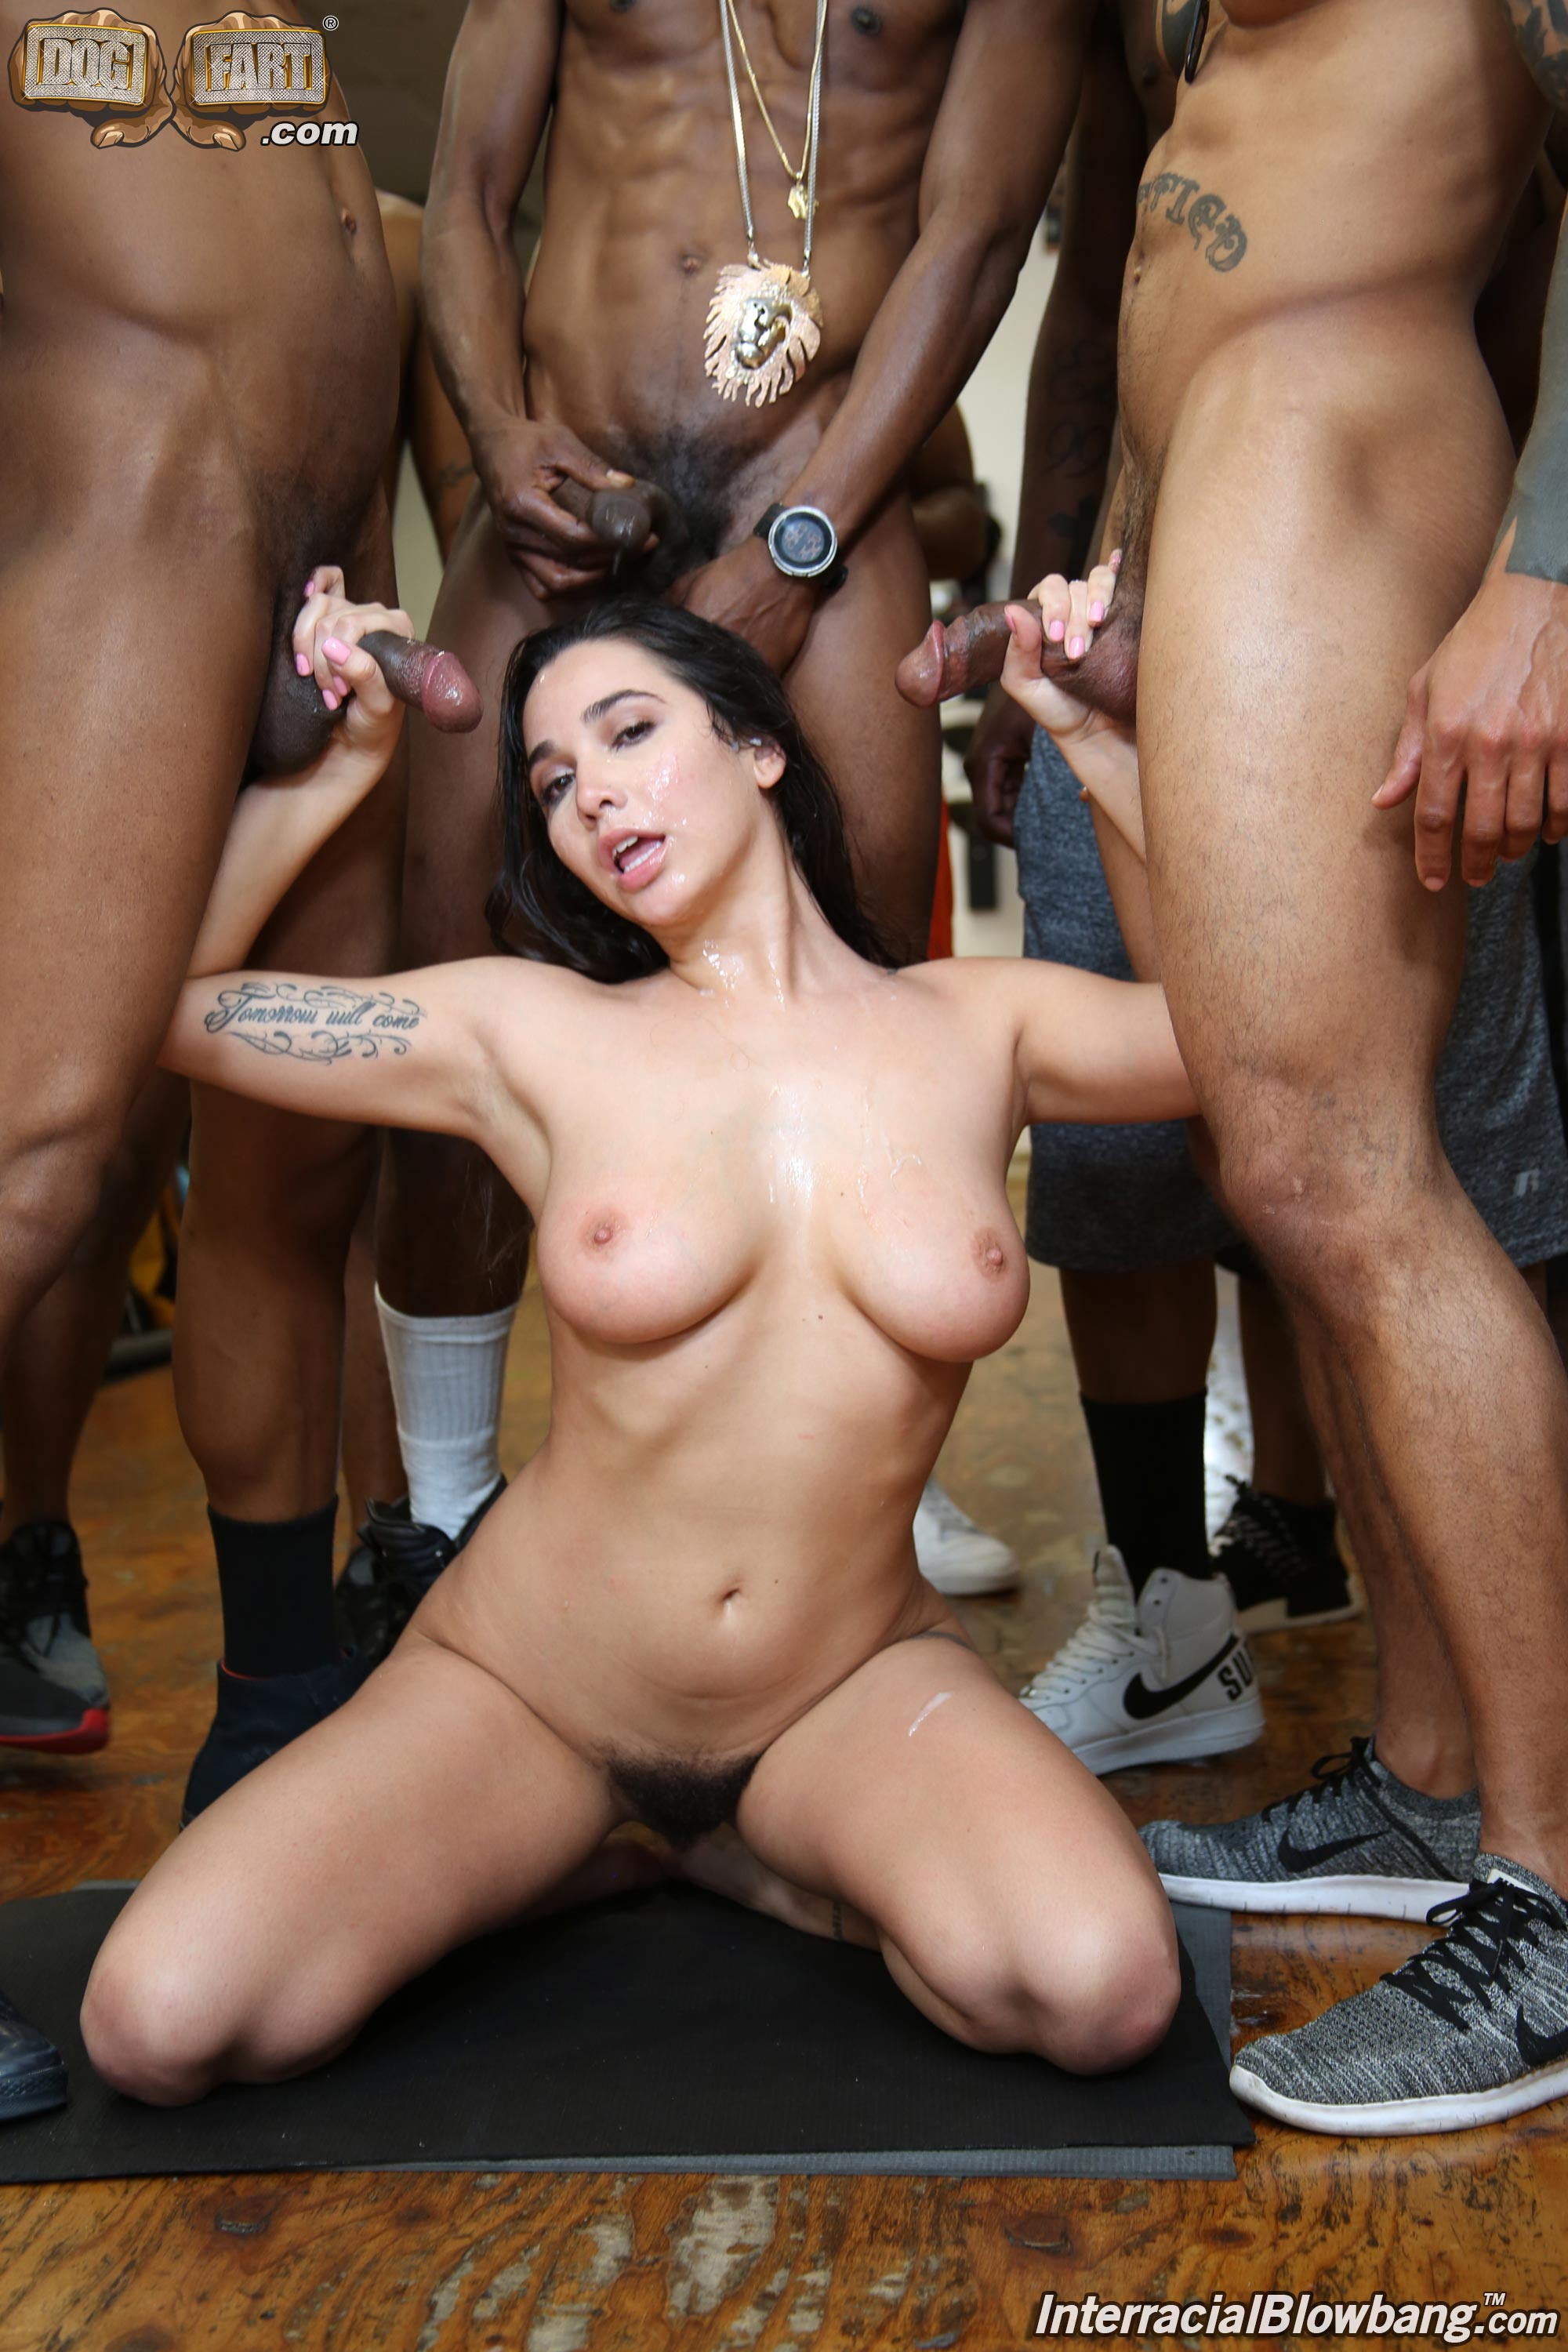 Dogfart 'Karlee Grey - Interracial Blowbang' starring Karlee Grey (photo 25)